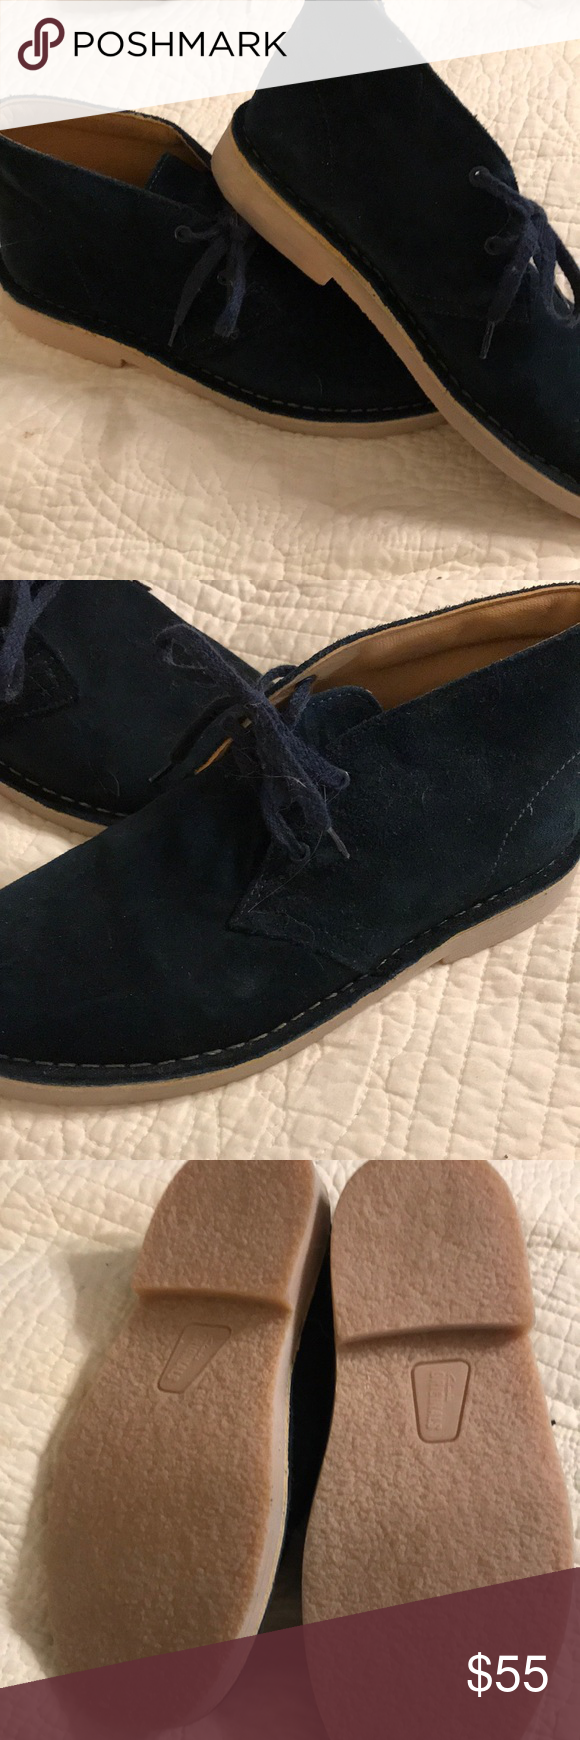 Clark's indigo blue suede desert books Sz 3 bk These Clark boots are like  new navy indigo Suede I think my Daughter wore them one time if that.